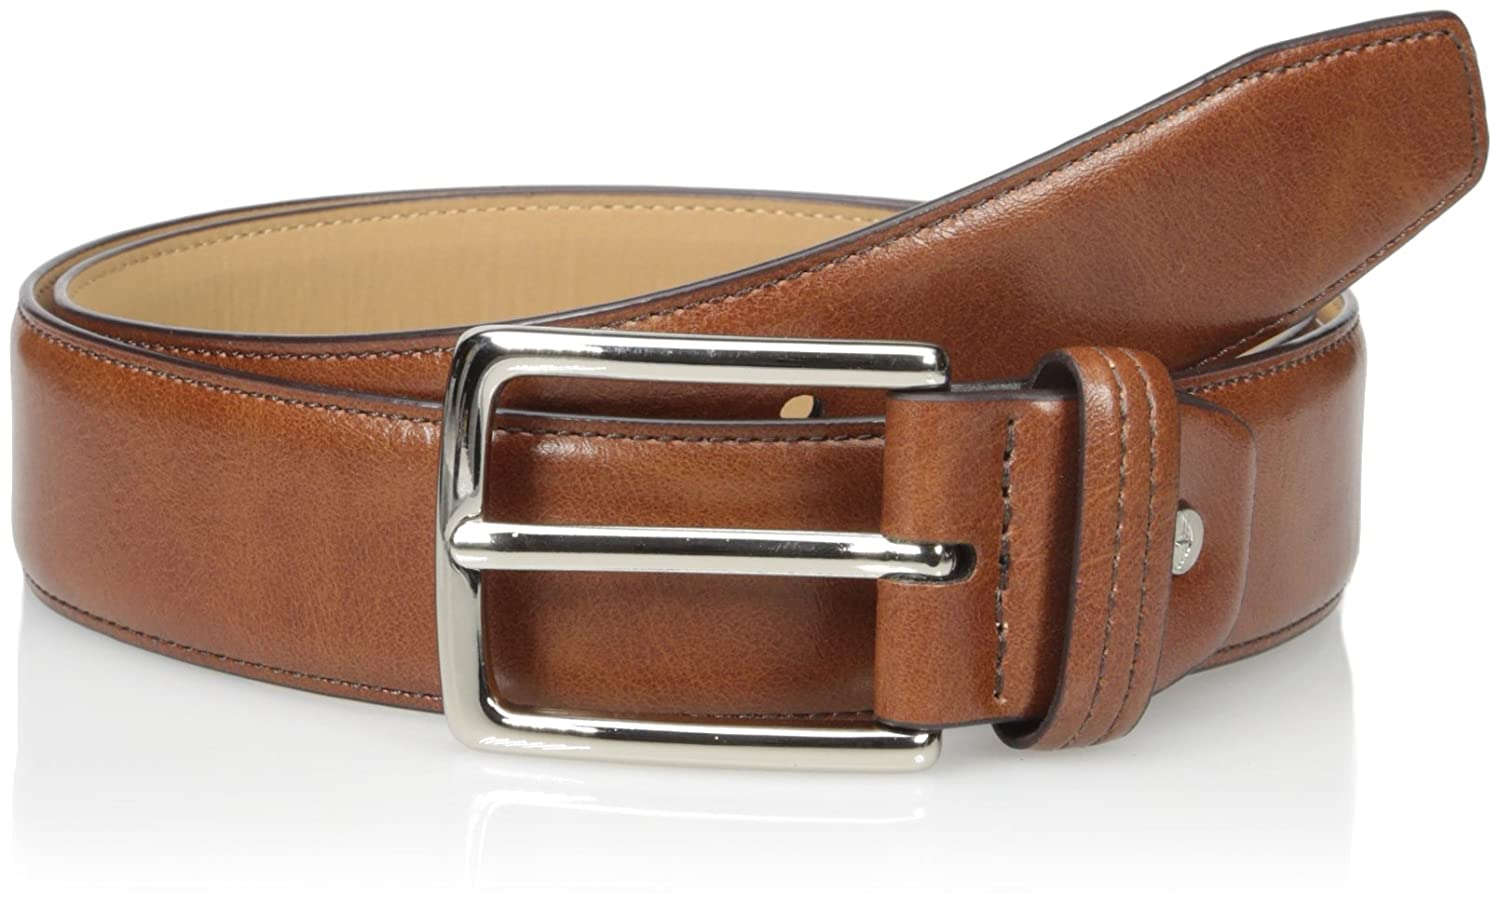 Dockers Men's Leather Dress Belt 11DK02A6